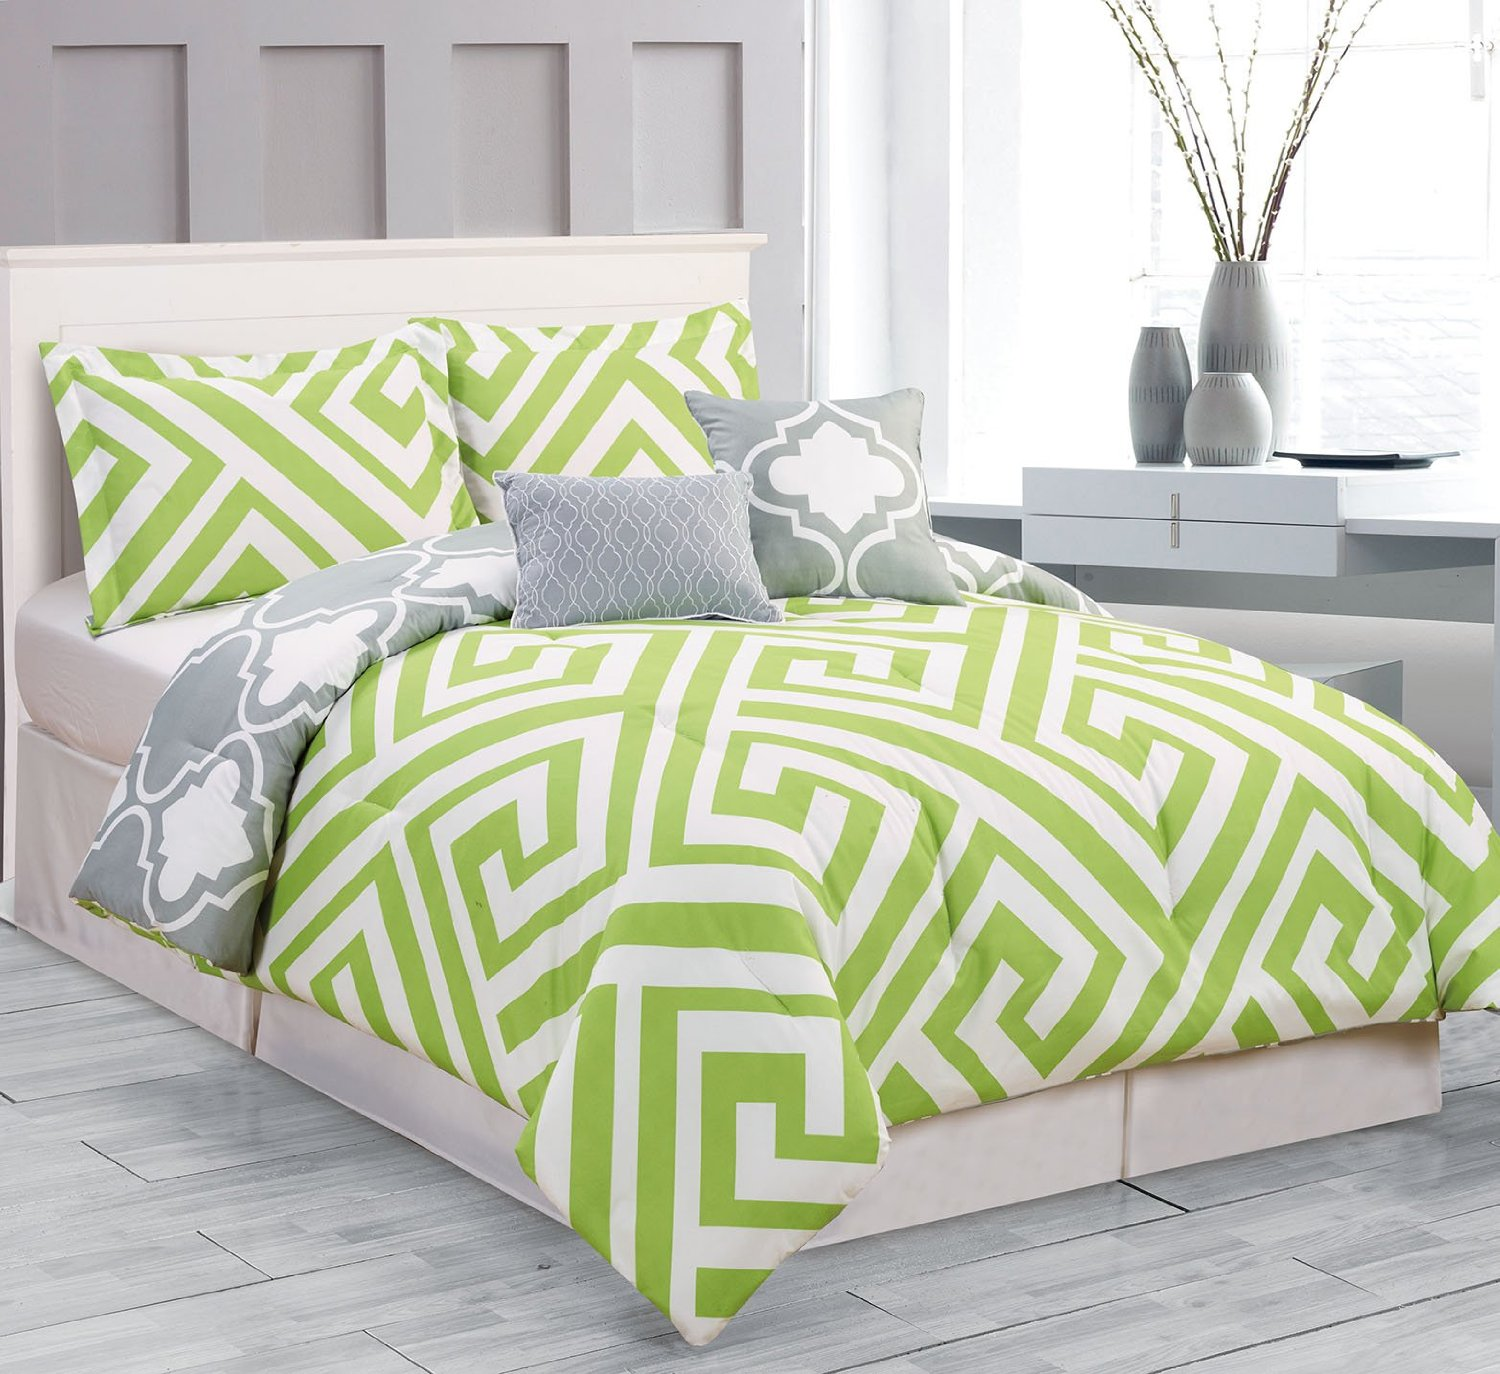 total fab lime green and grey bedding sets - lime green and grey bedding sets